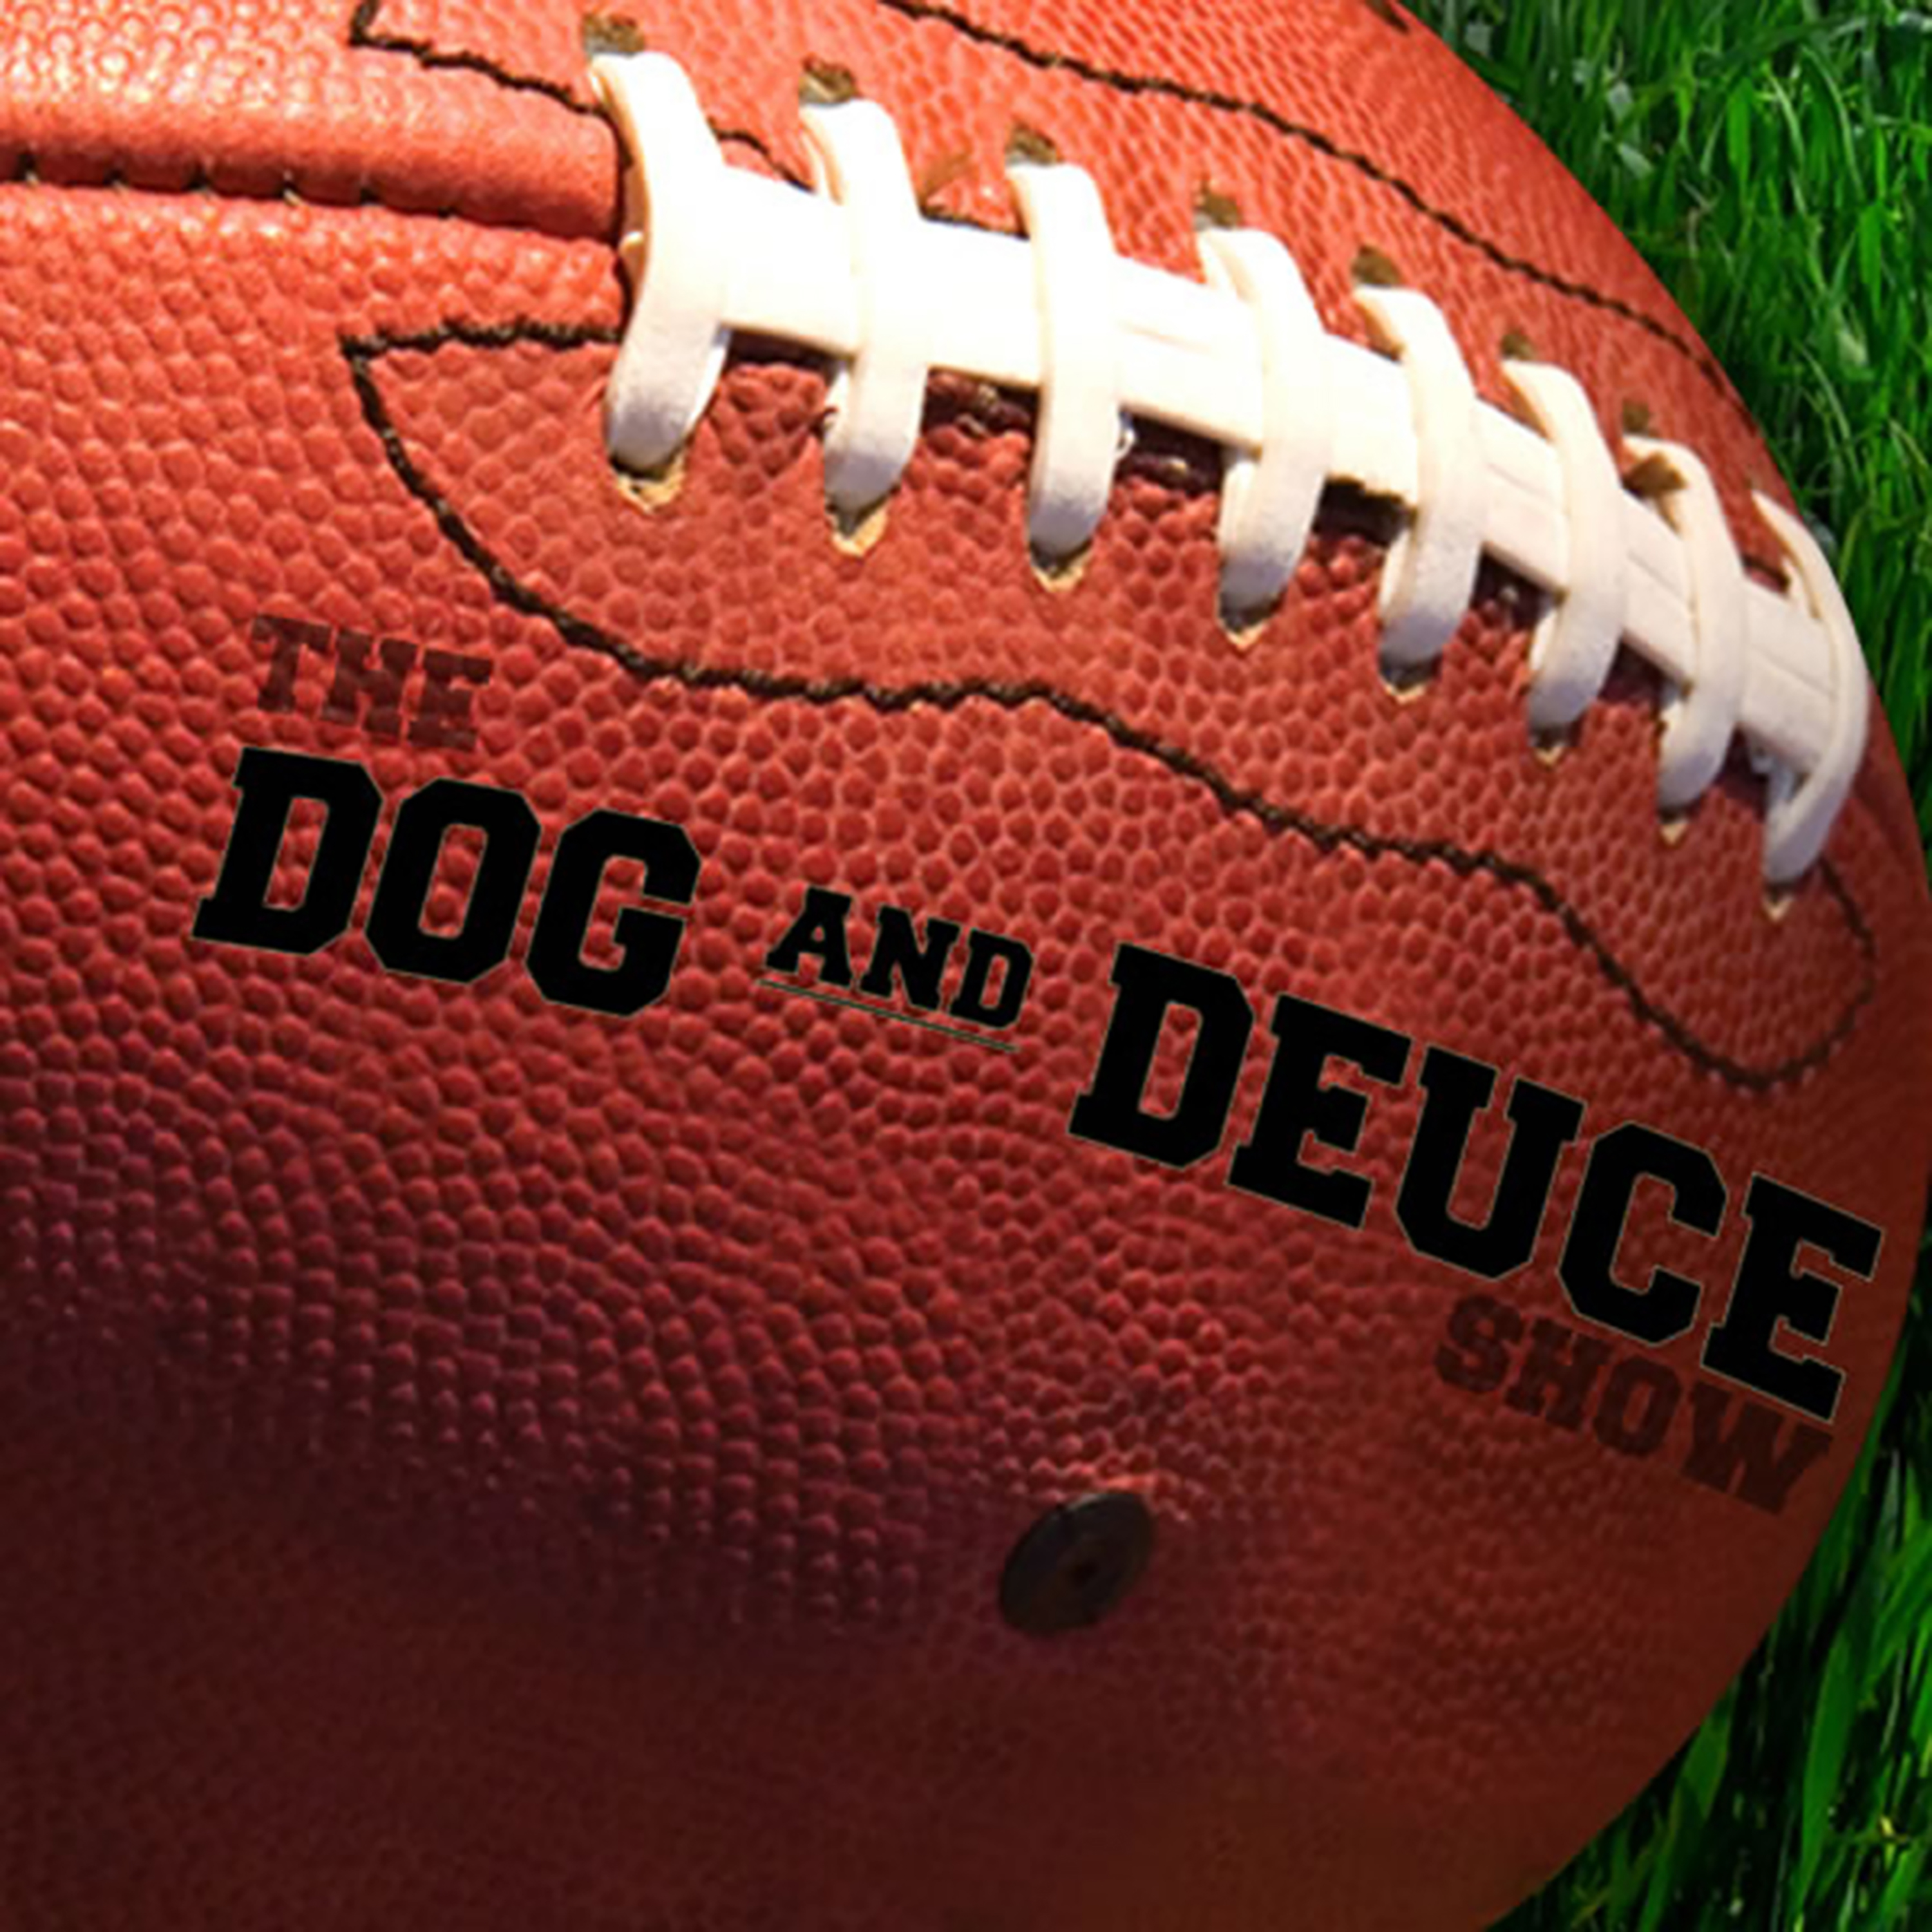 The Dog and Deuce Show